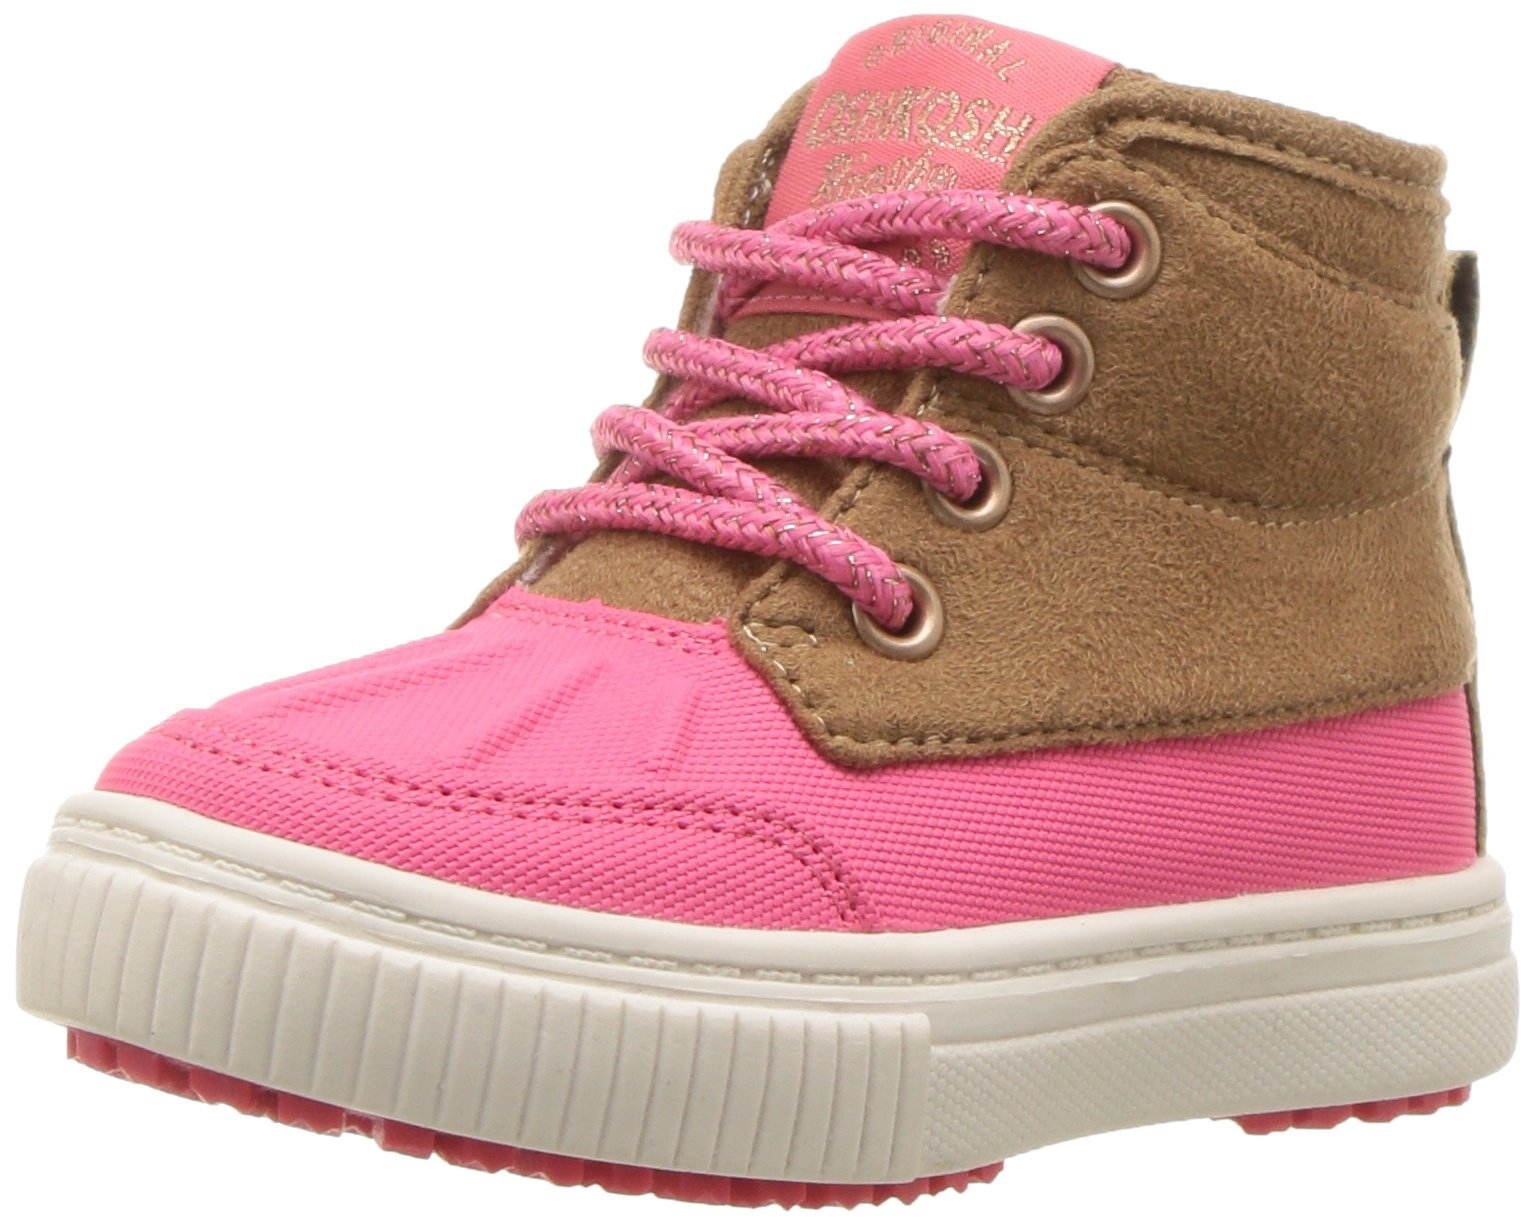 OshKosh B'Gosh Girls' Rafferty Fashion Boot, Pink, 1 M US Little Kid